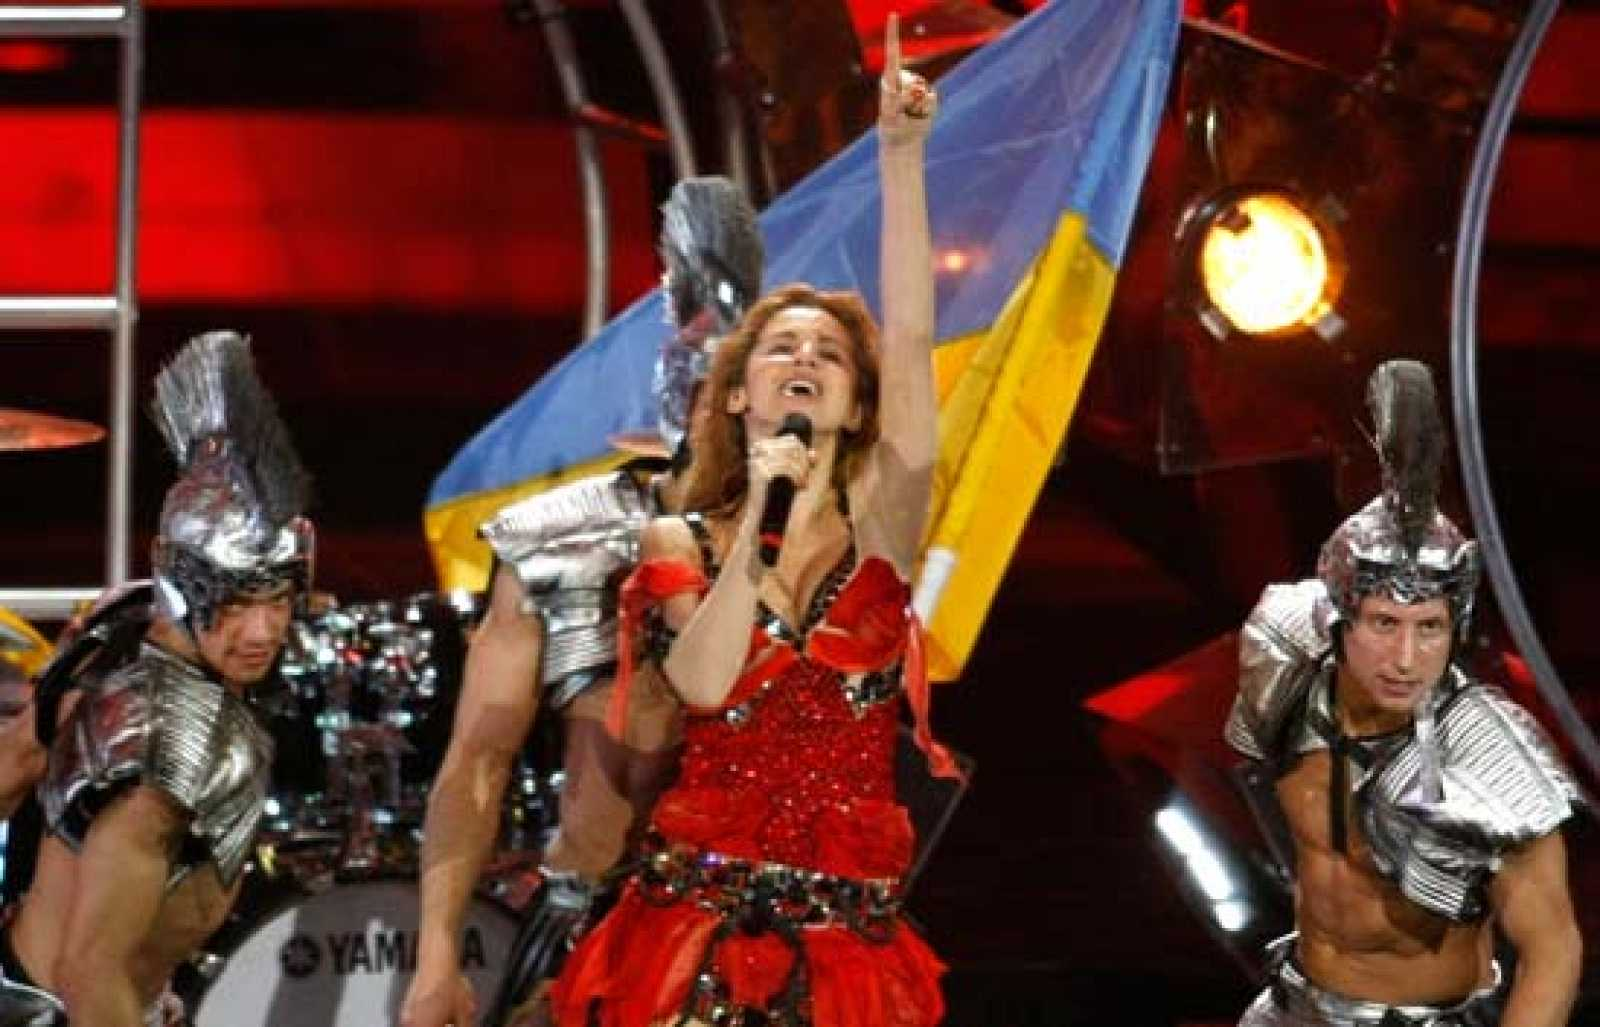 Eurovisión 2009 - Ucrania: Be my Valentine (Anti-crisis girl)